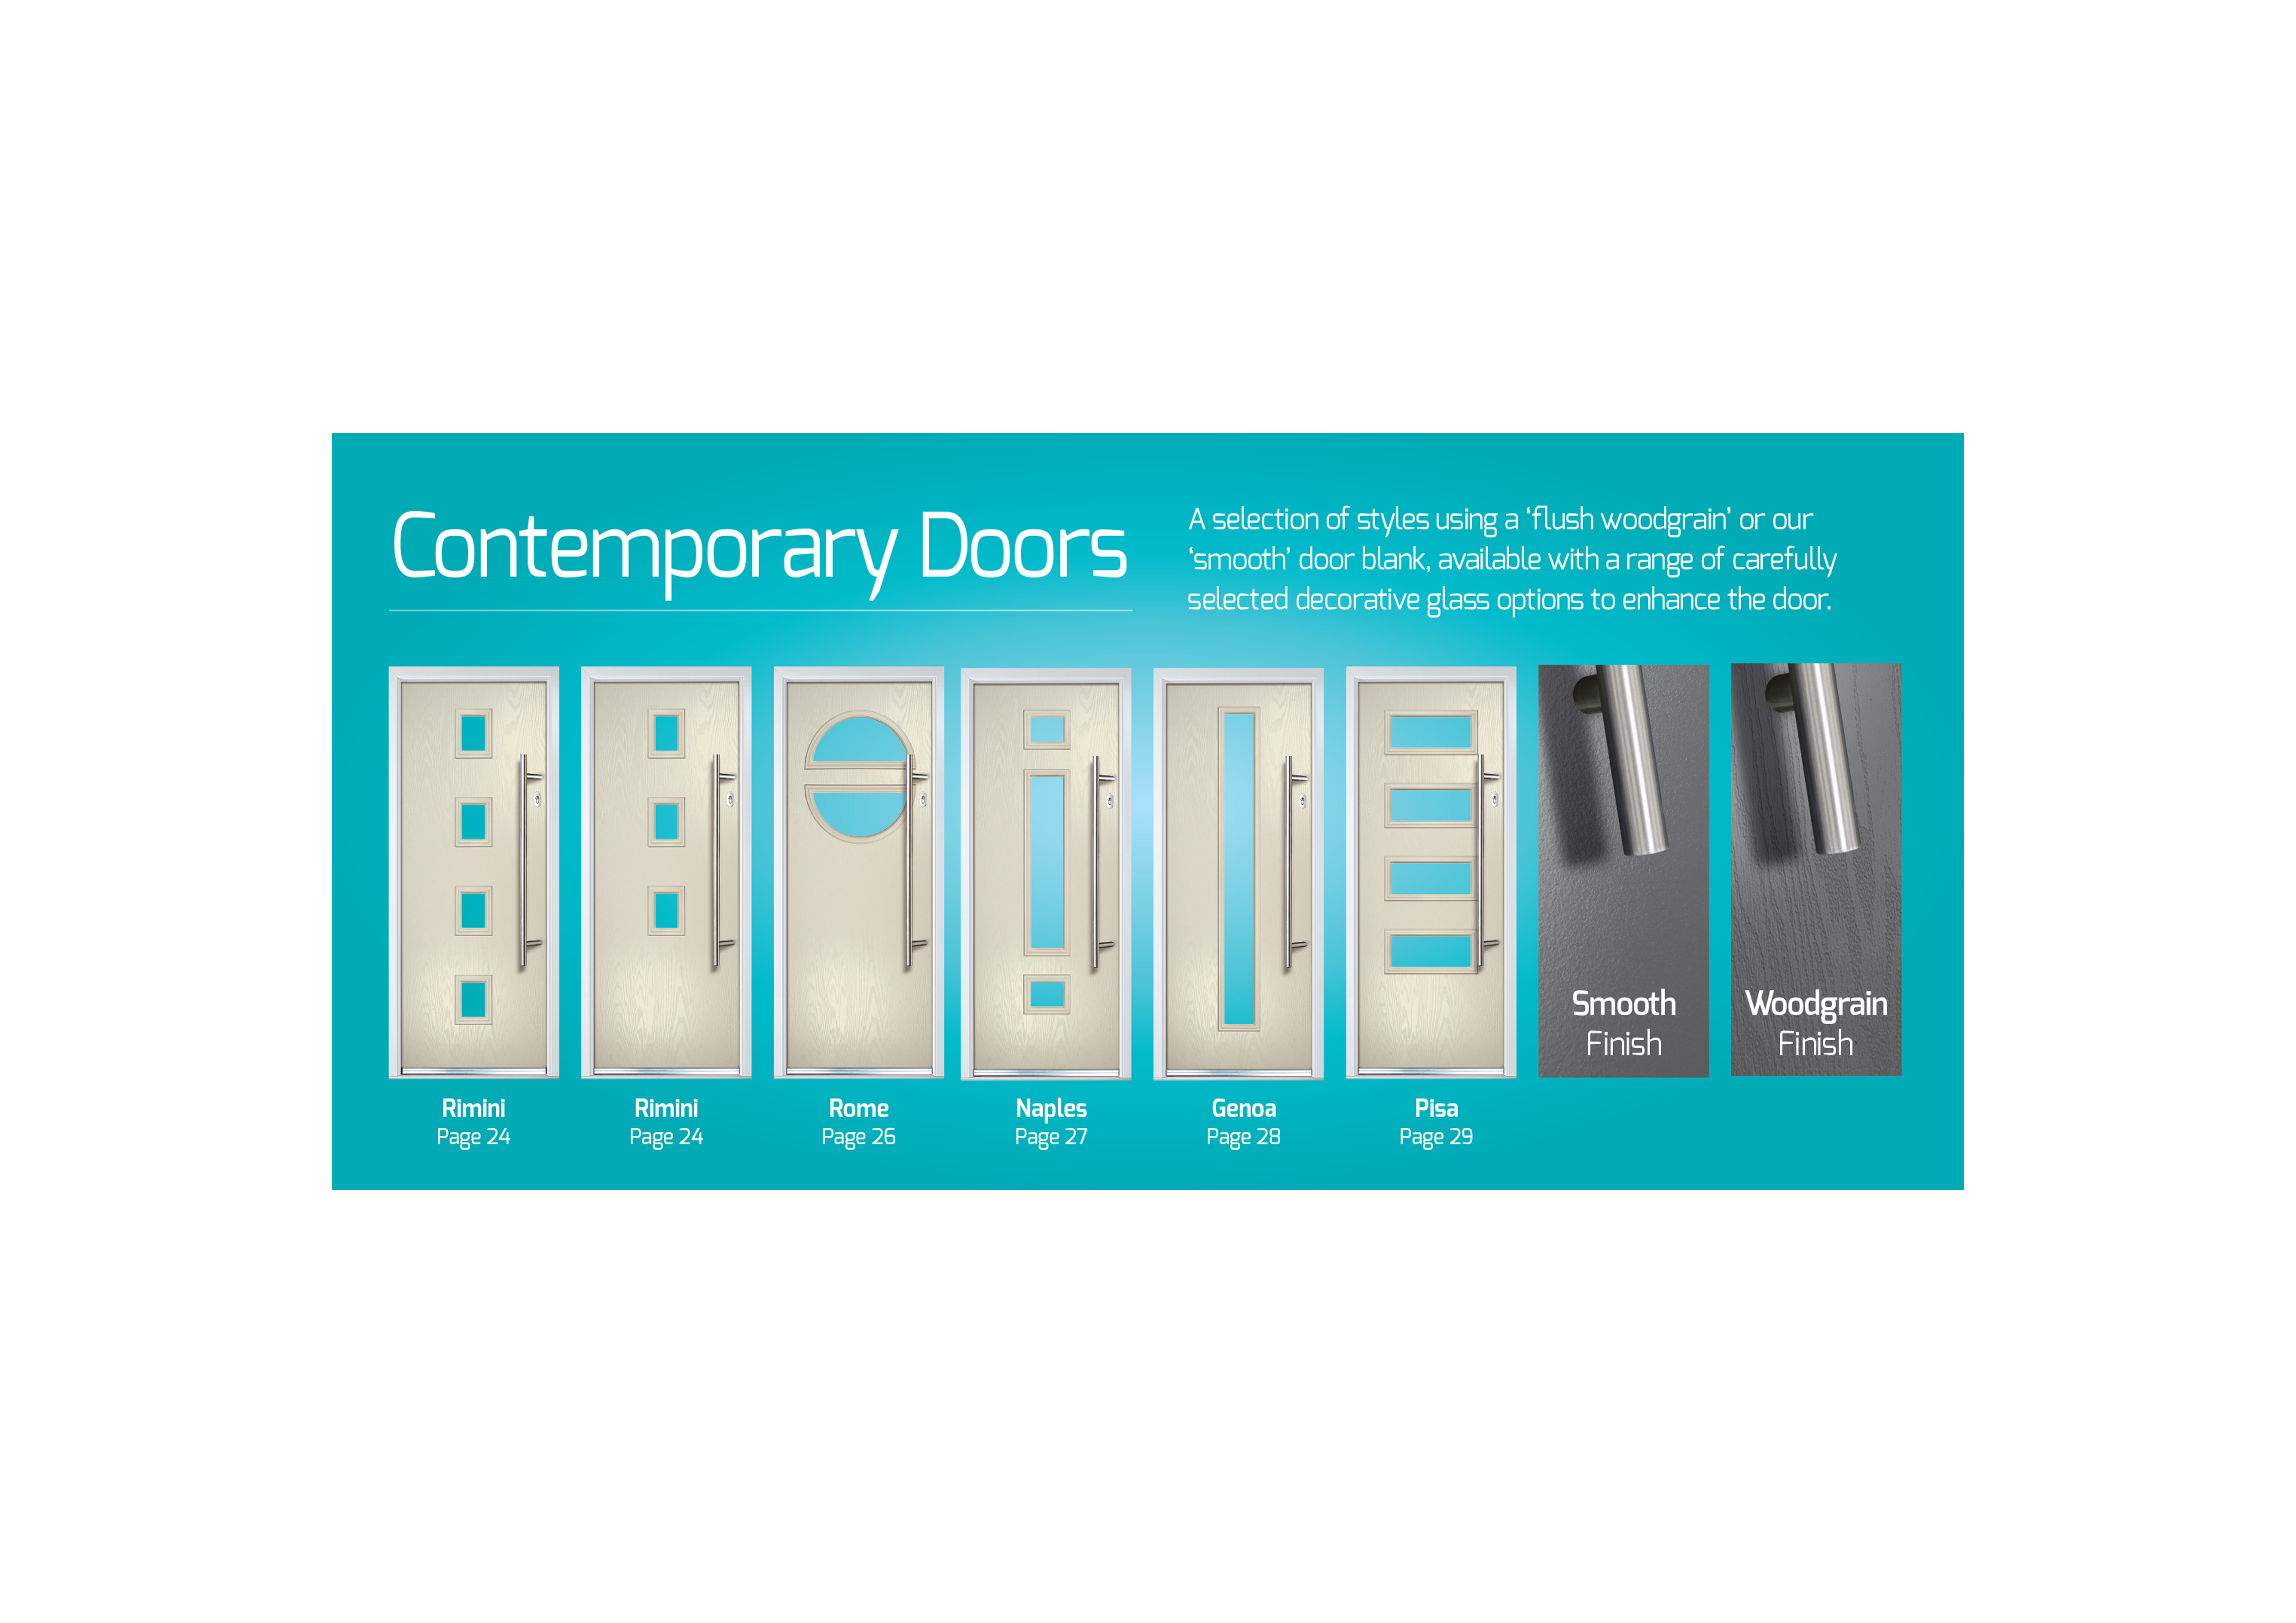 Contemporary doors now available in smooth finish